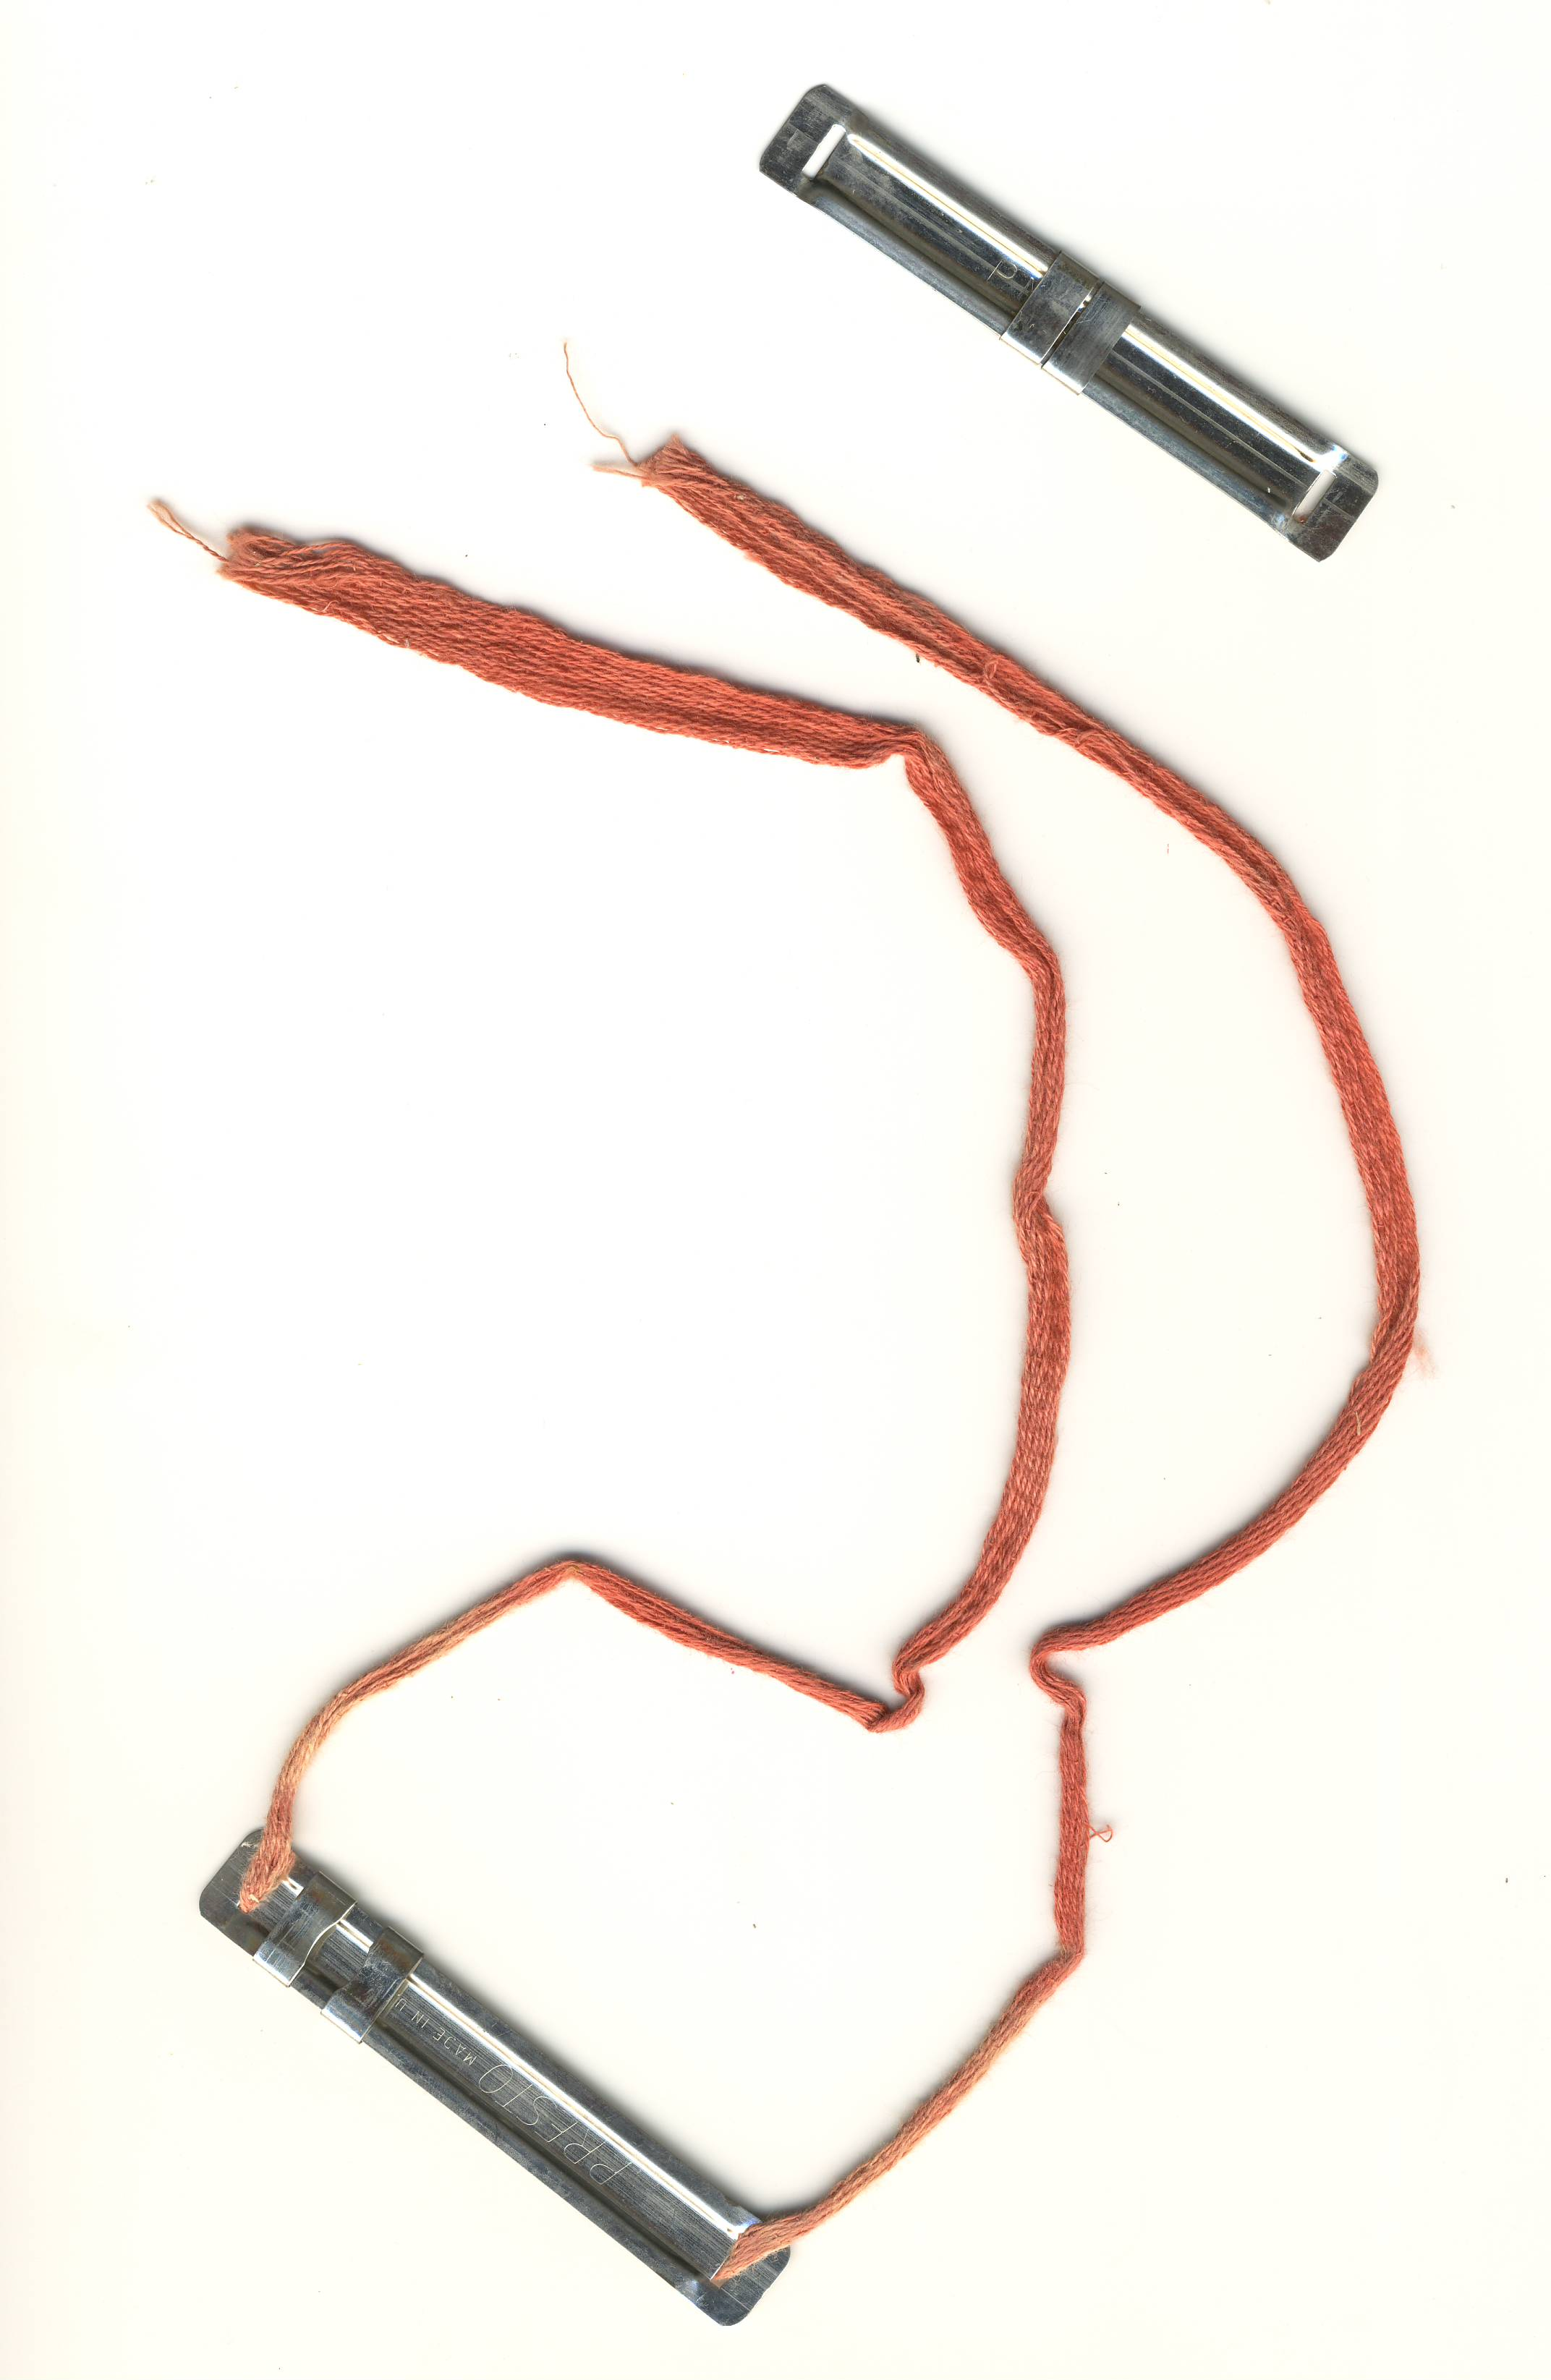 Red Tape and Acco Fastener Hybrid - from RG 64, P 39.jpg